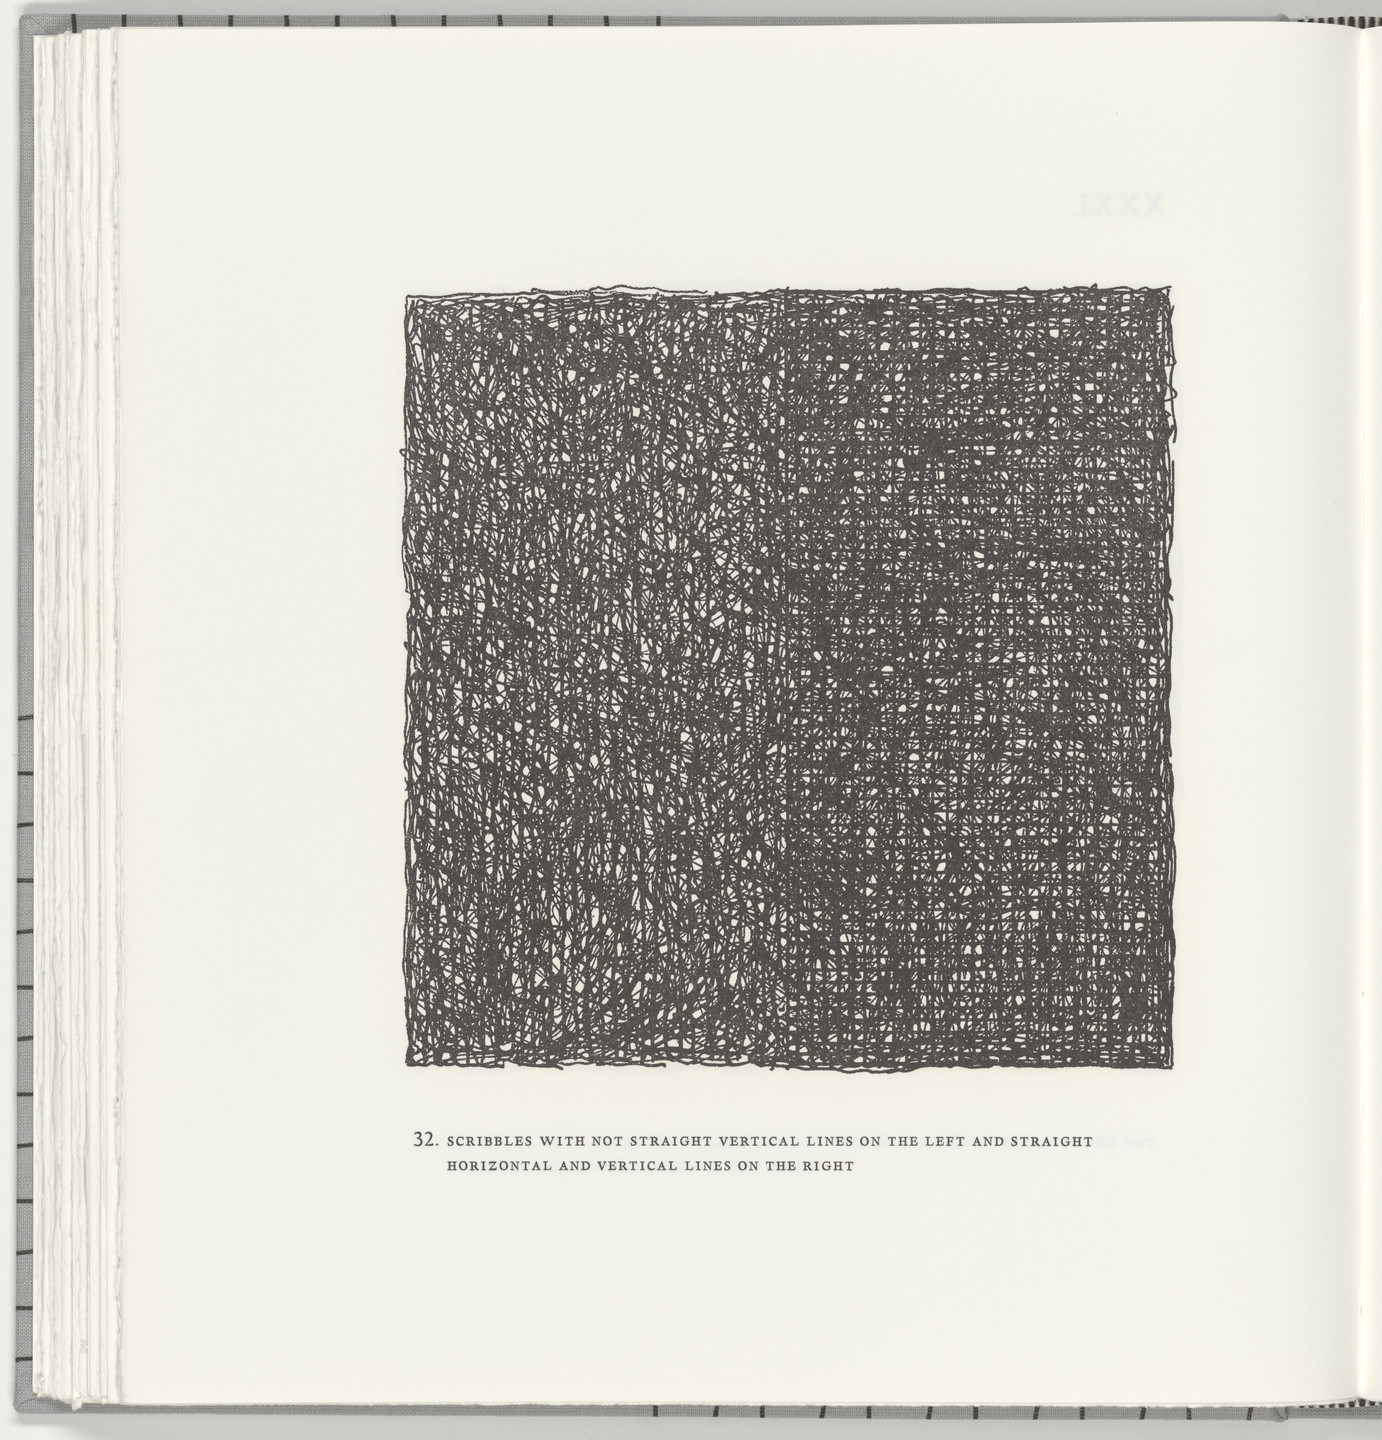 Sol LeWitt. Scribbles with Not Straight Vertical Lines on the Left and Straight Horizontal and Vertical Lines on the Right (plate 32) from Squarings. 2003